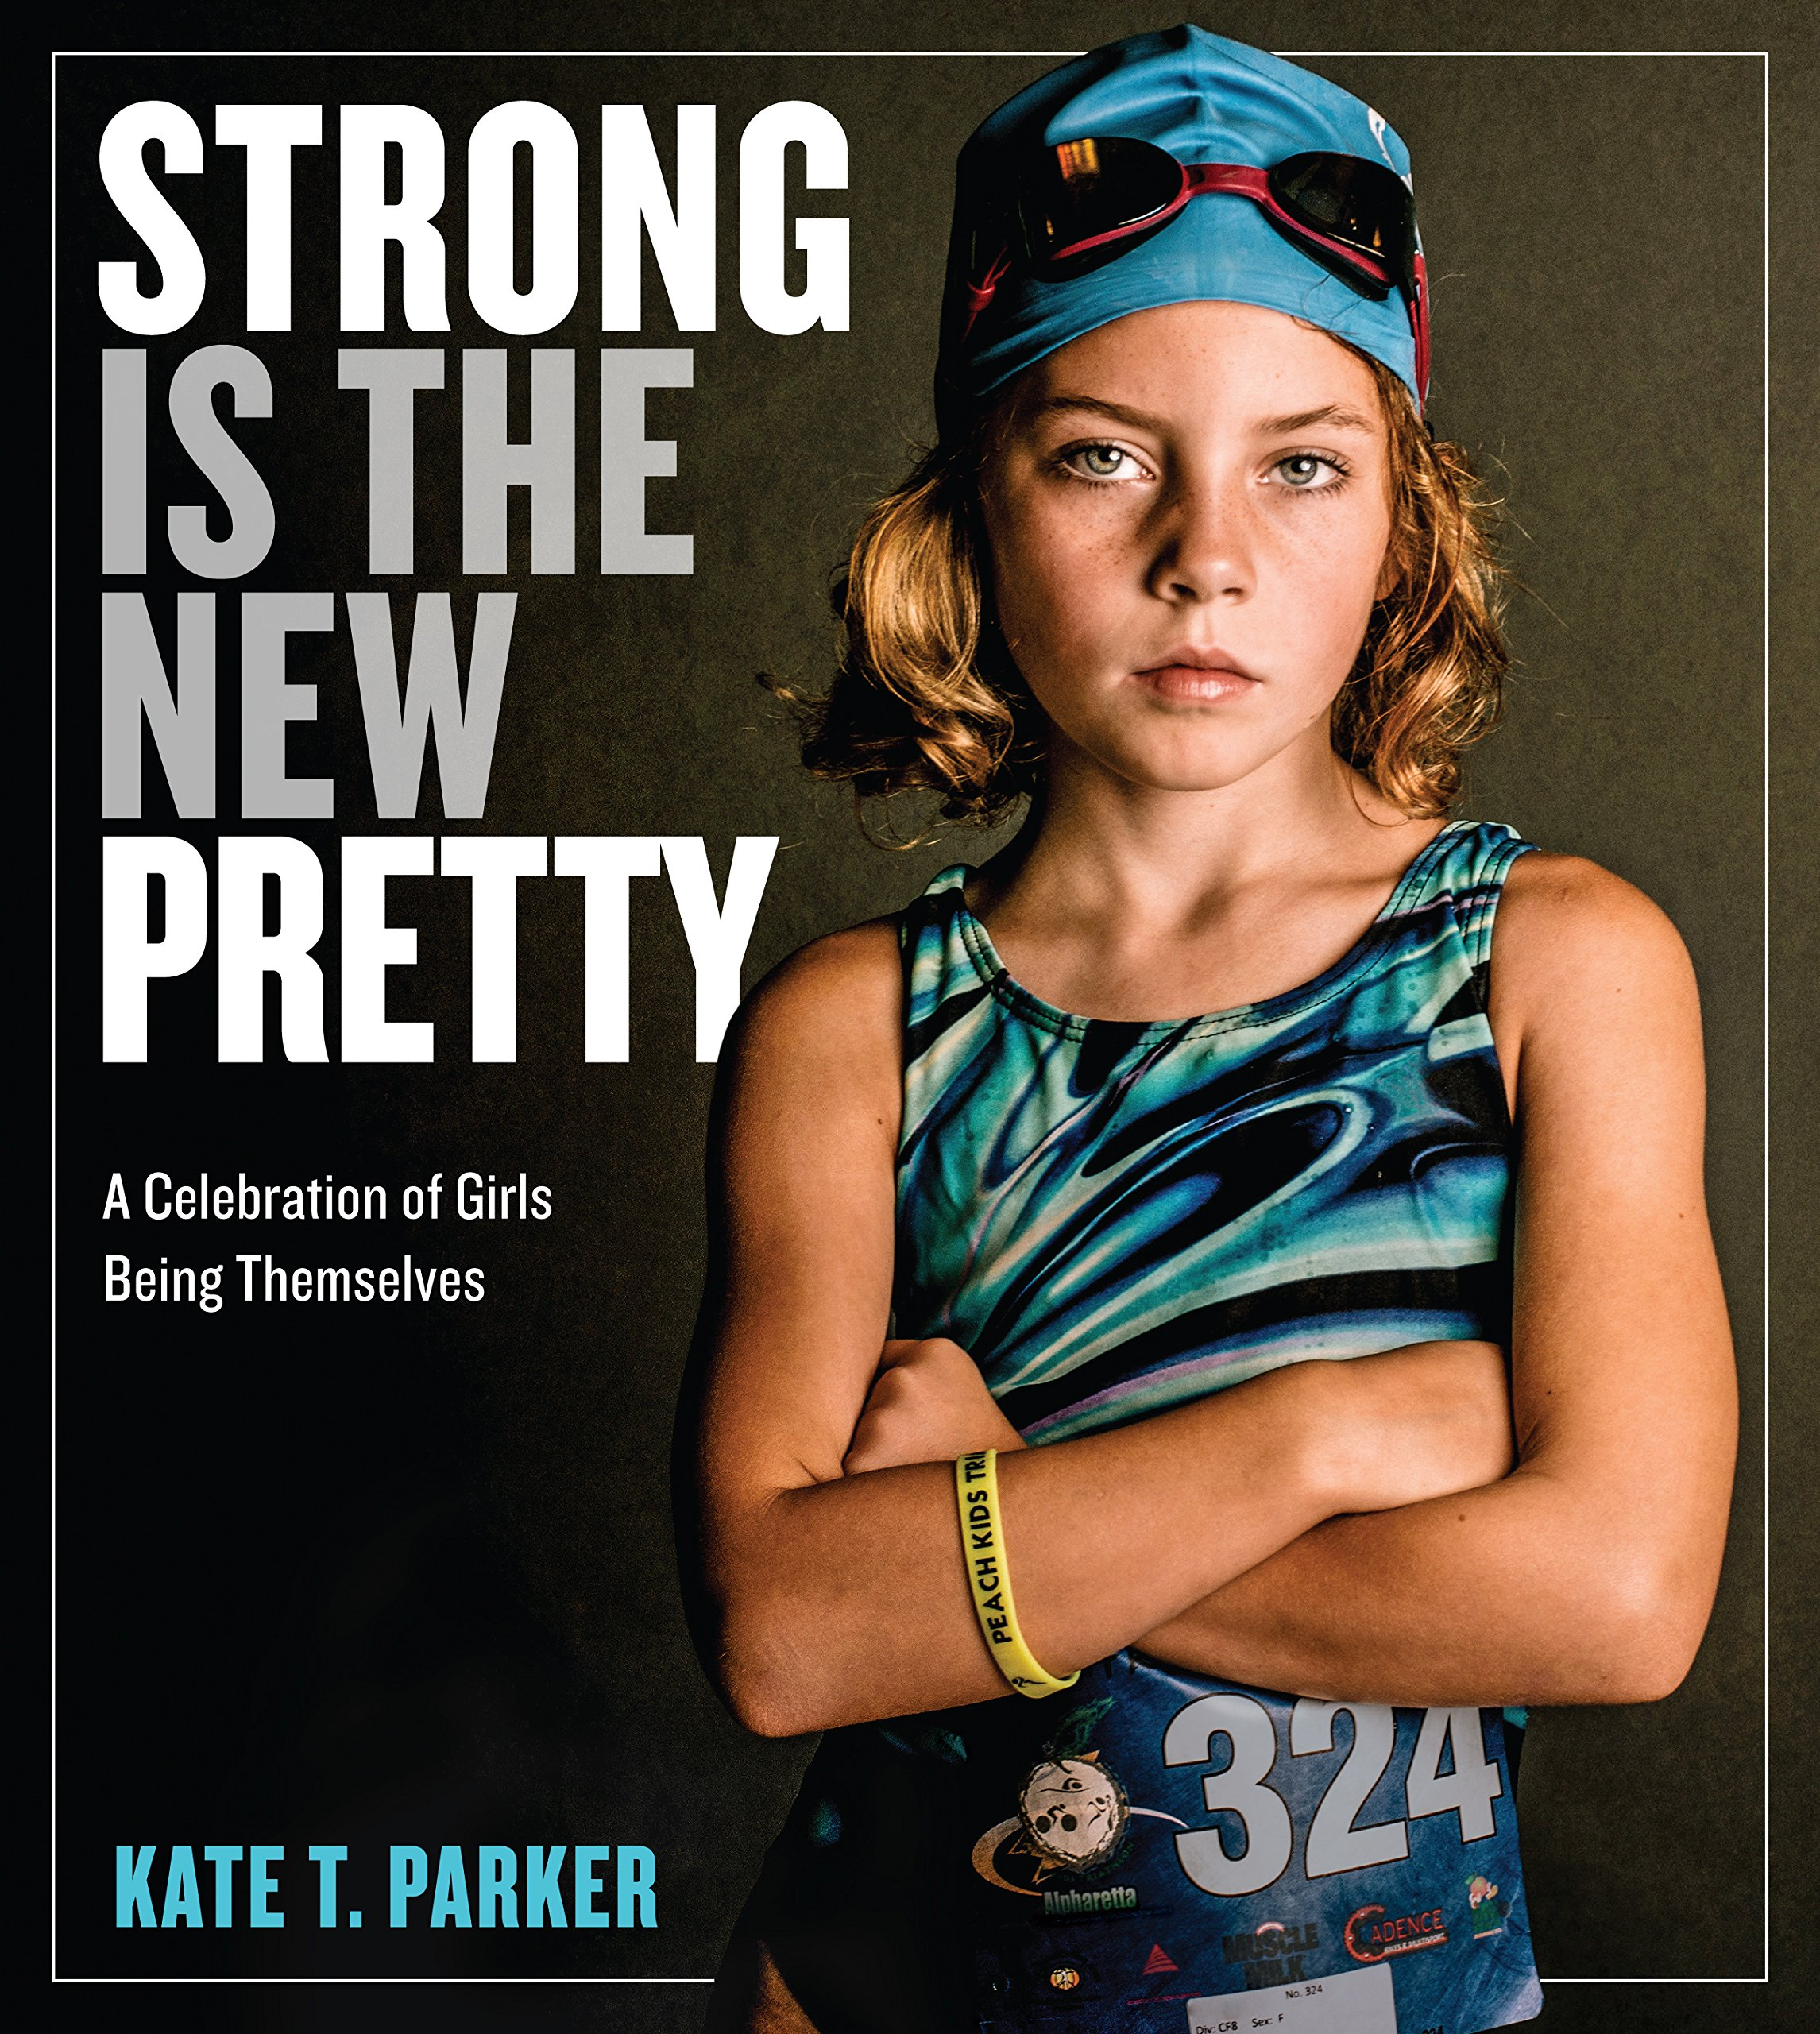 Strong-Is-The-New-Pretty.jpg